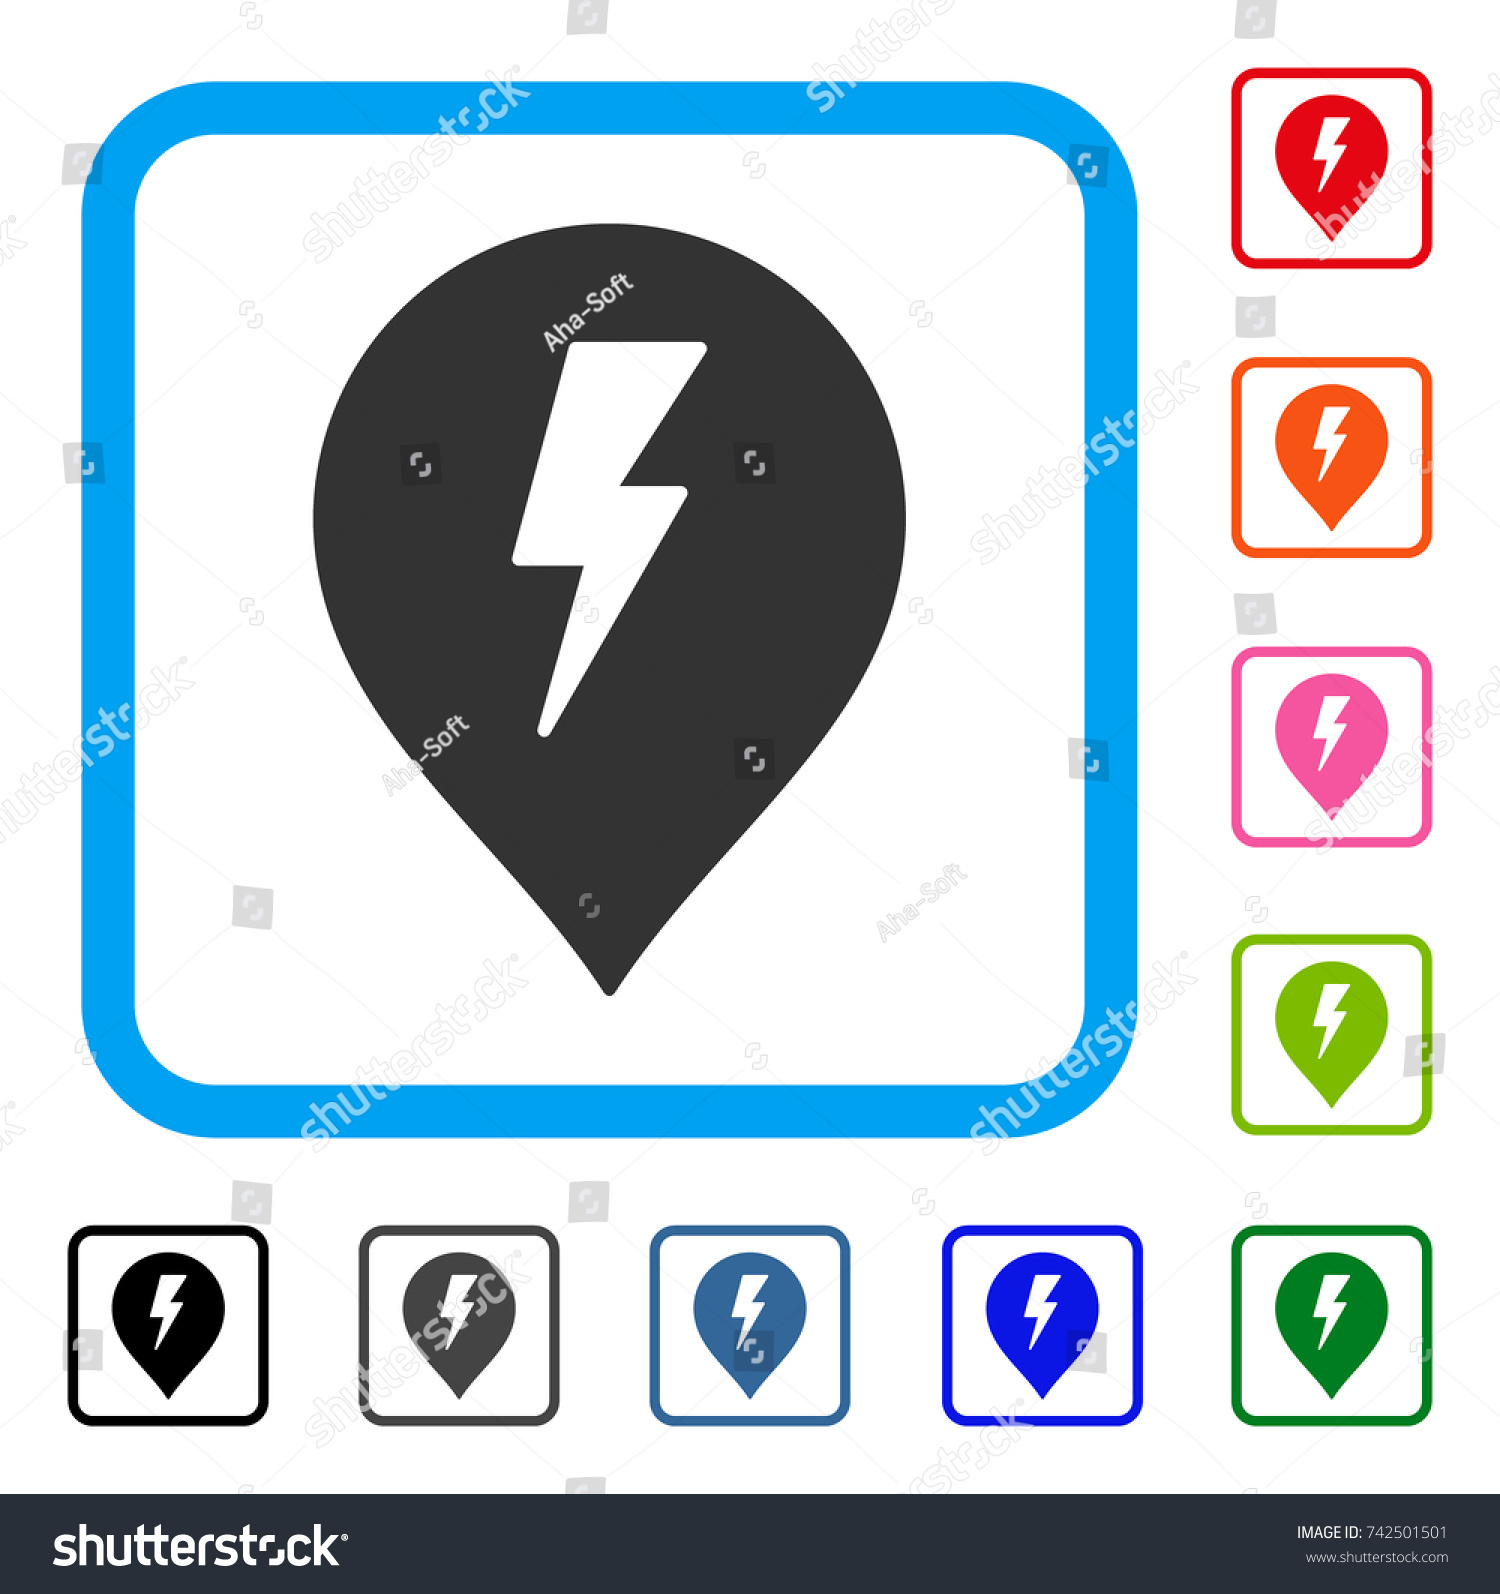 Electric Shock Marker Icon Flat Gray Stock Vector 742501501 ...